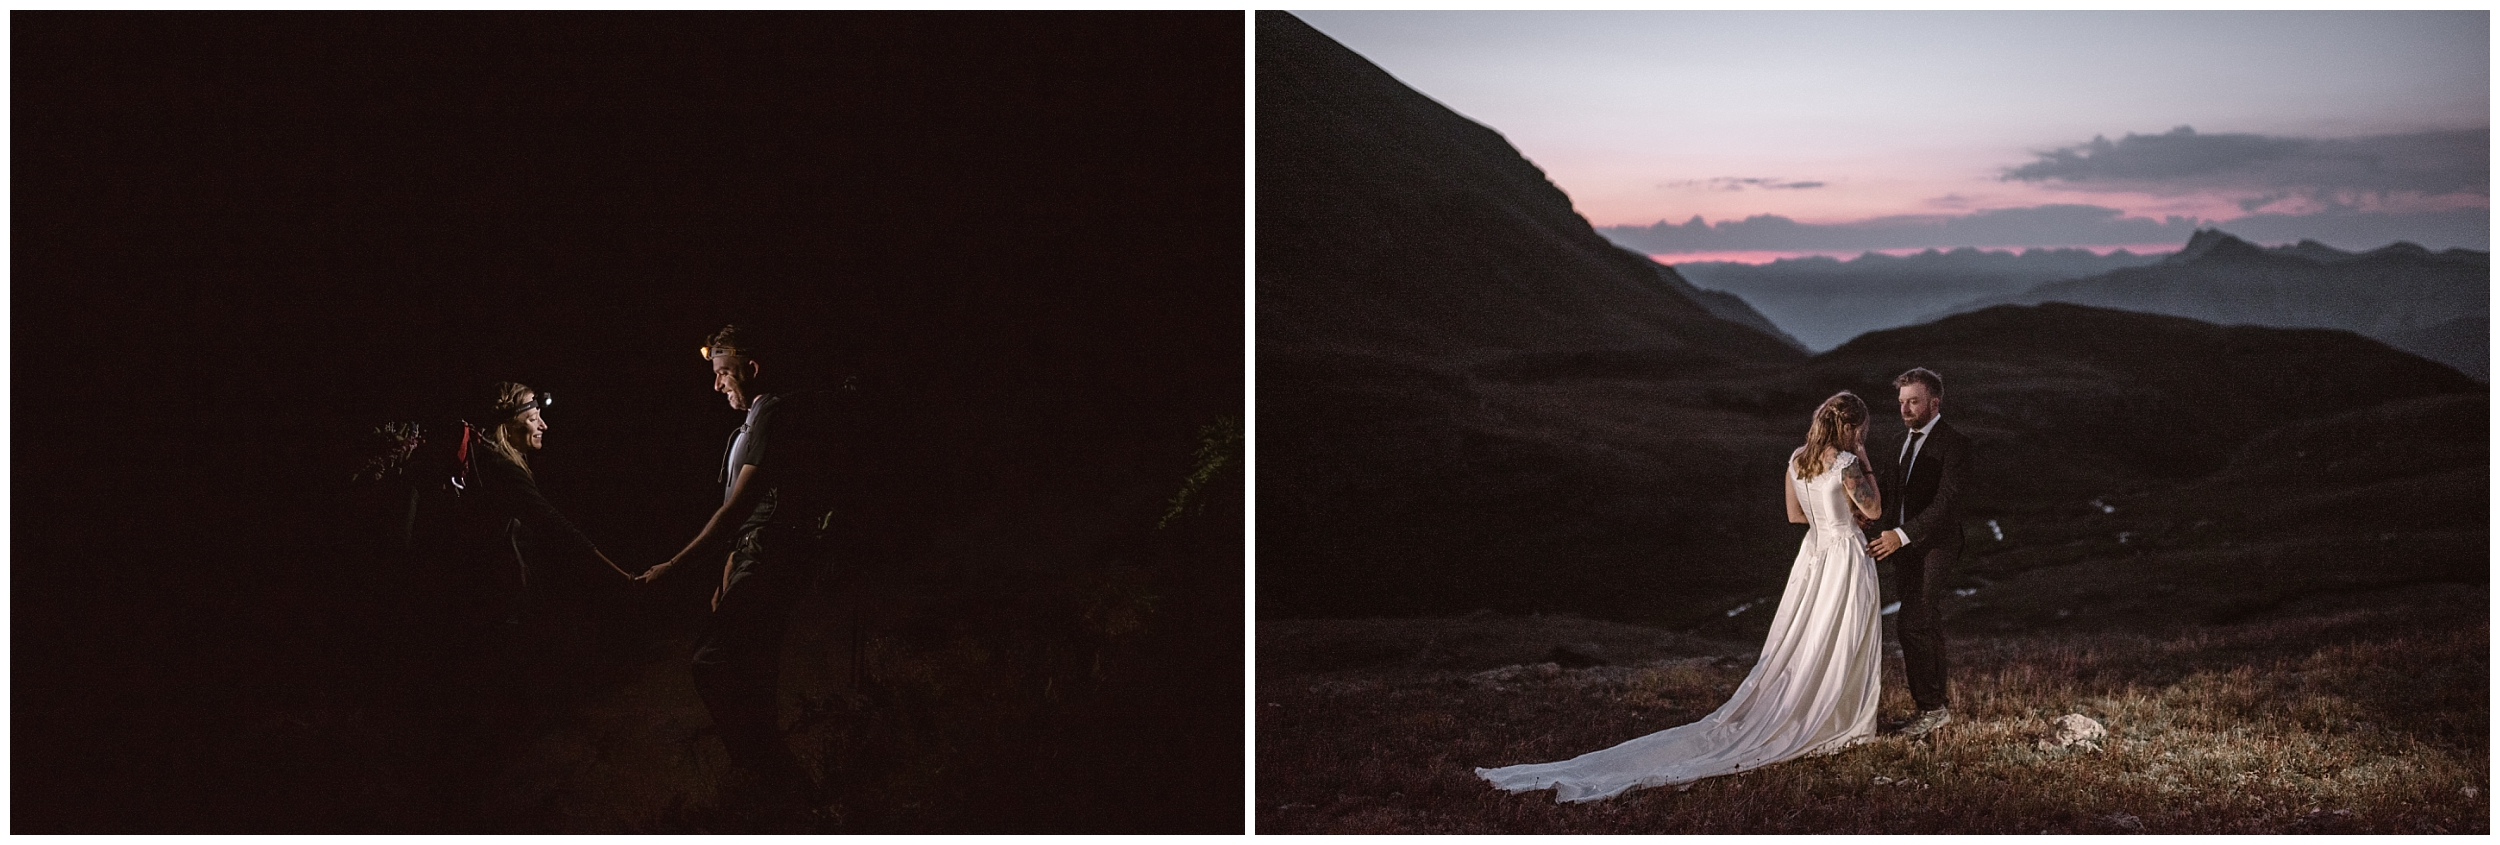 Brecka and Nick, the bride and groom, hold each other close in these side-by-side elopement photos. They hiked up to their elopement location in the dark by the light of a headlamp, then had their first look as the sun rose — one of the benefits of eloping.